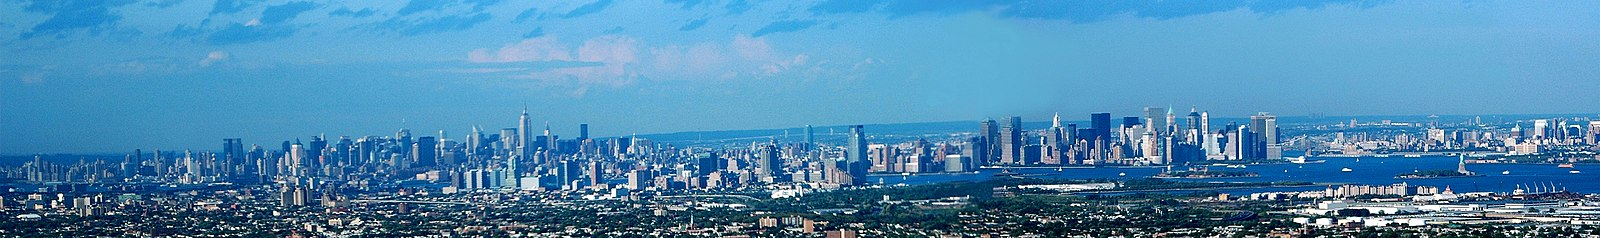 Skyline over New York City og Jersey City set fra Newark, New Jersey.